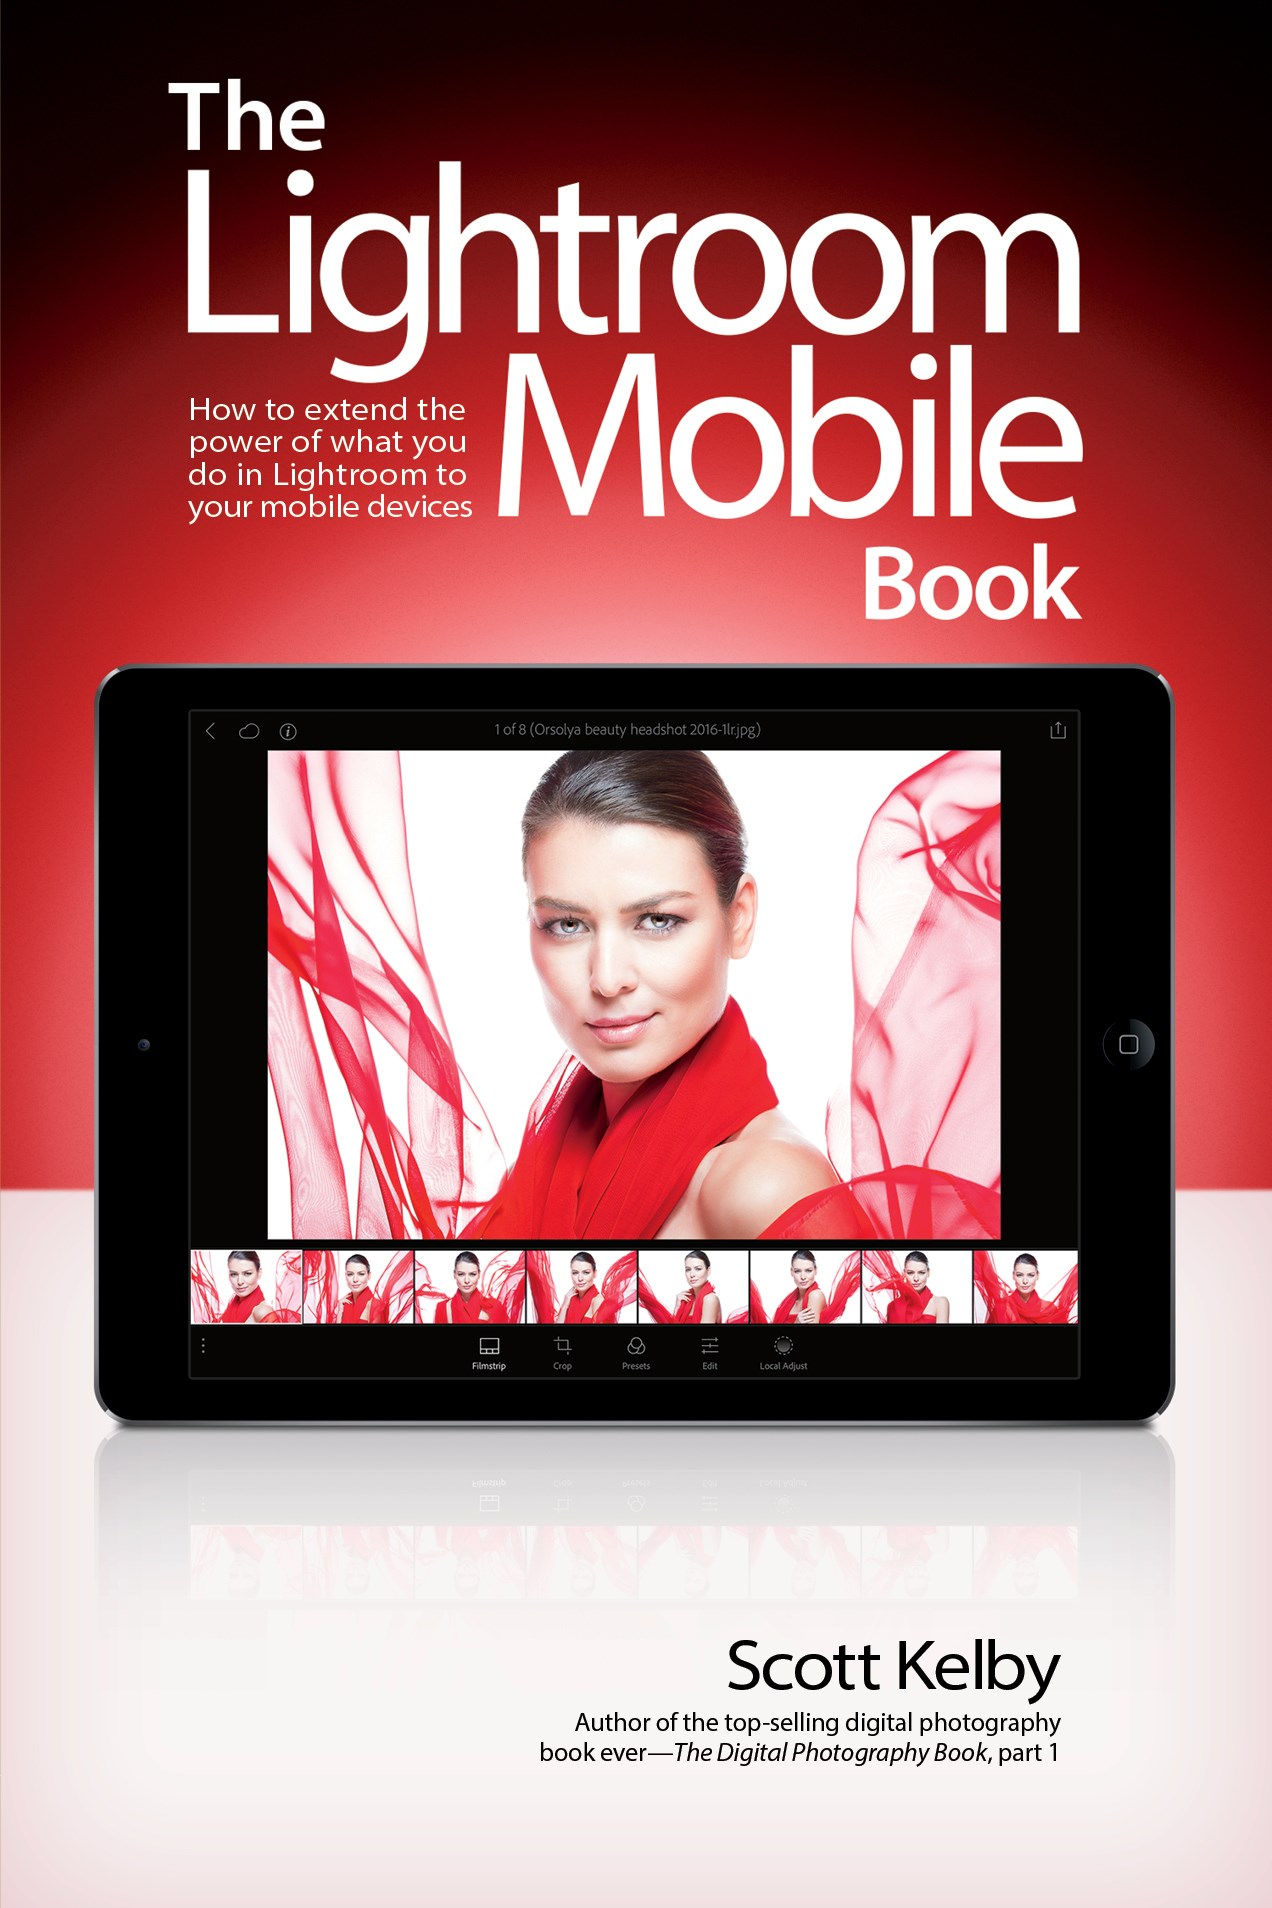 Lightroom Mobile Book, The: How to extend the power of what you do in Lightroom to your mobile devices